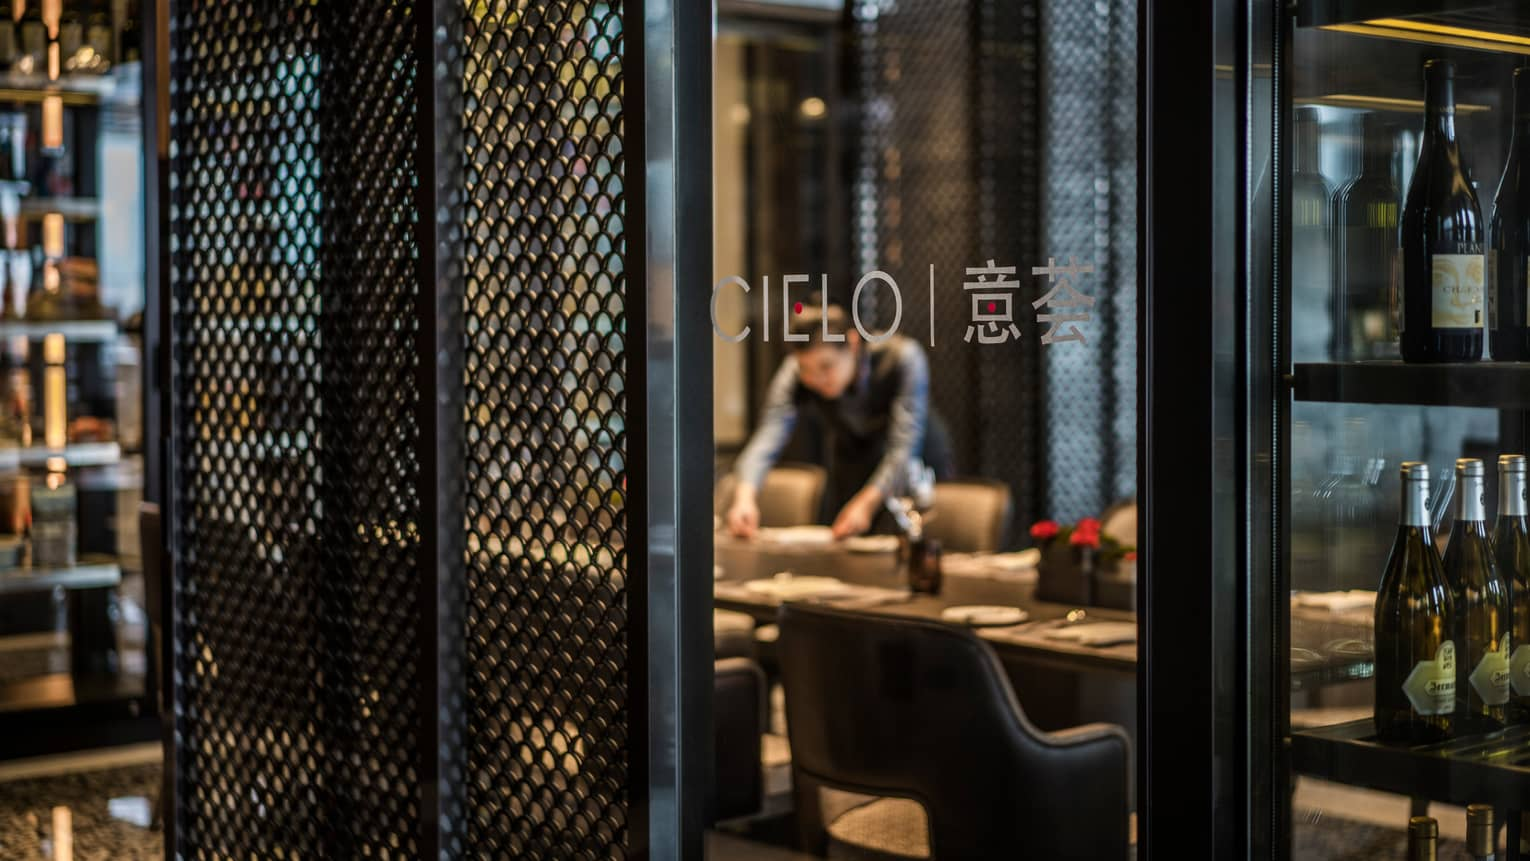 Server sets dining table behind glass wall with Cielo name, logo